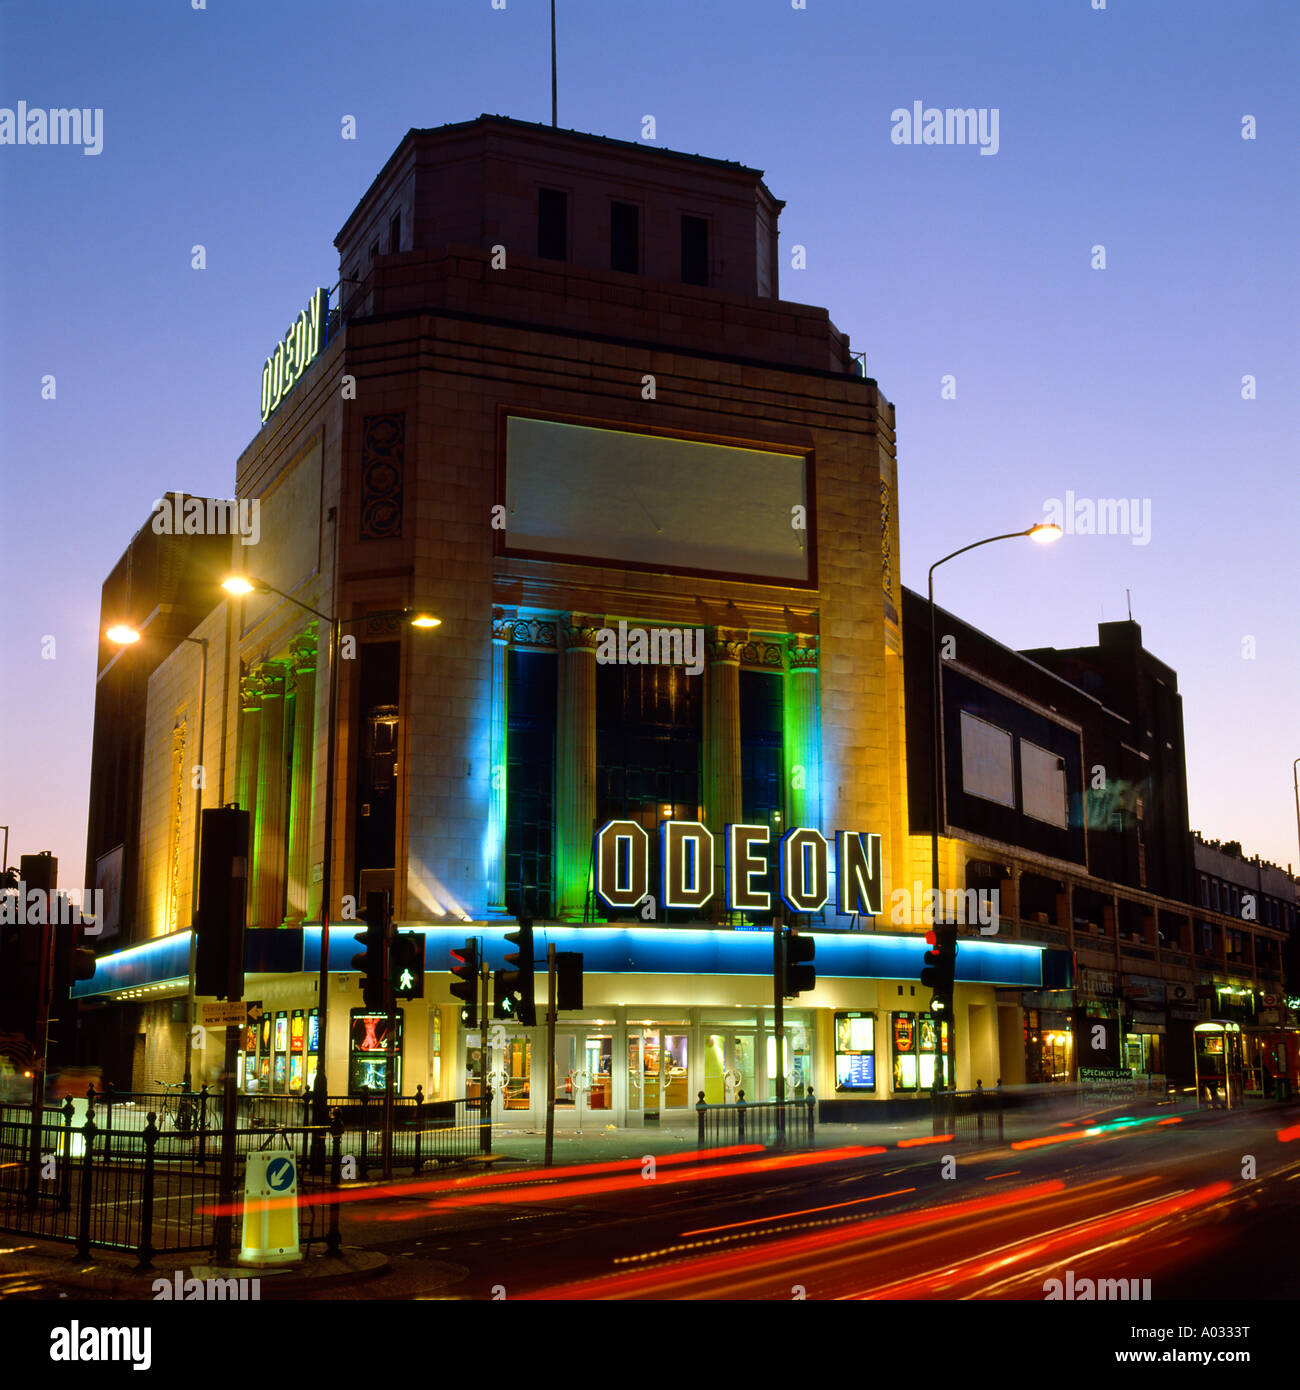 The Odeon Cinema Illuminated at Night, Holloway Road, London. - Stock Image